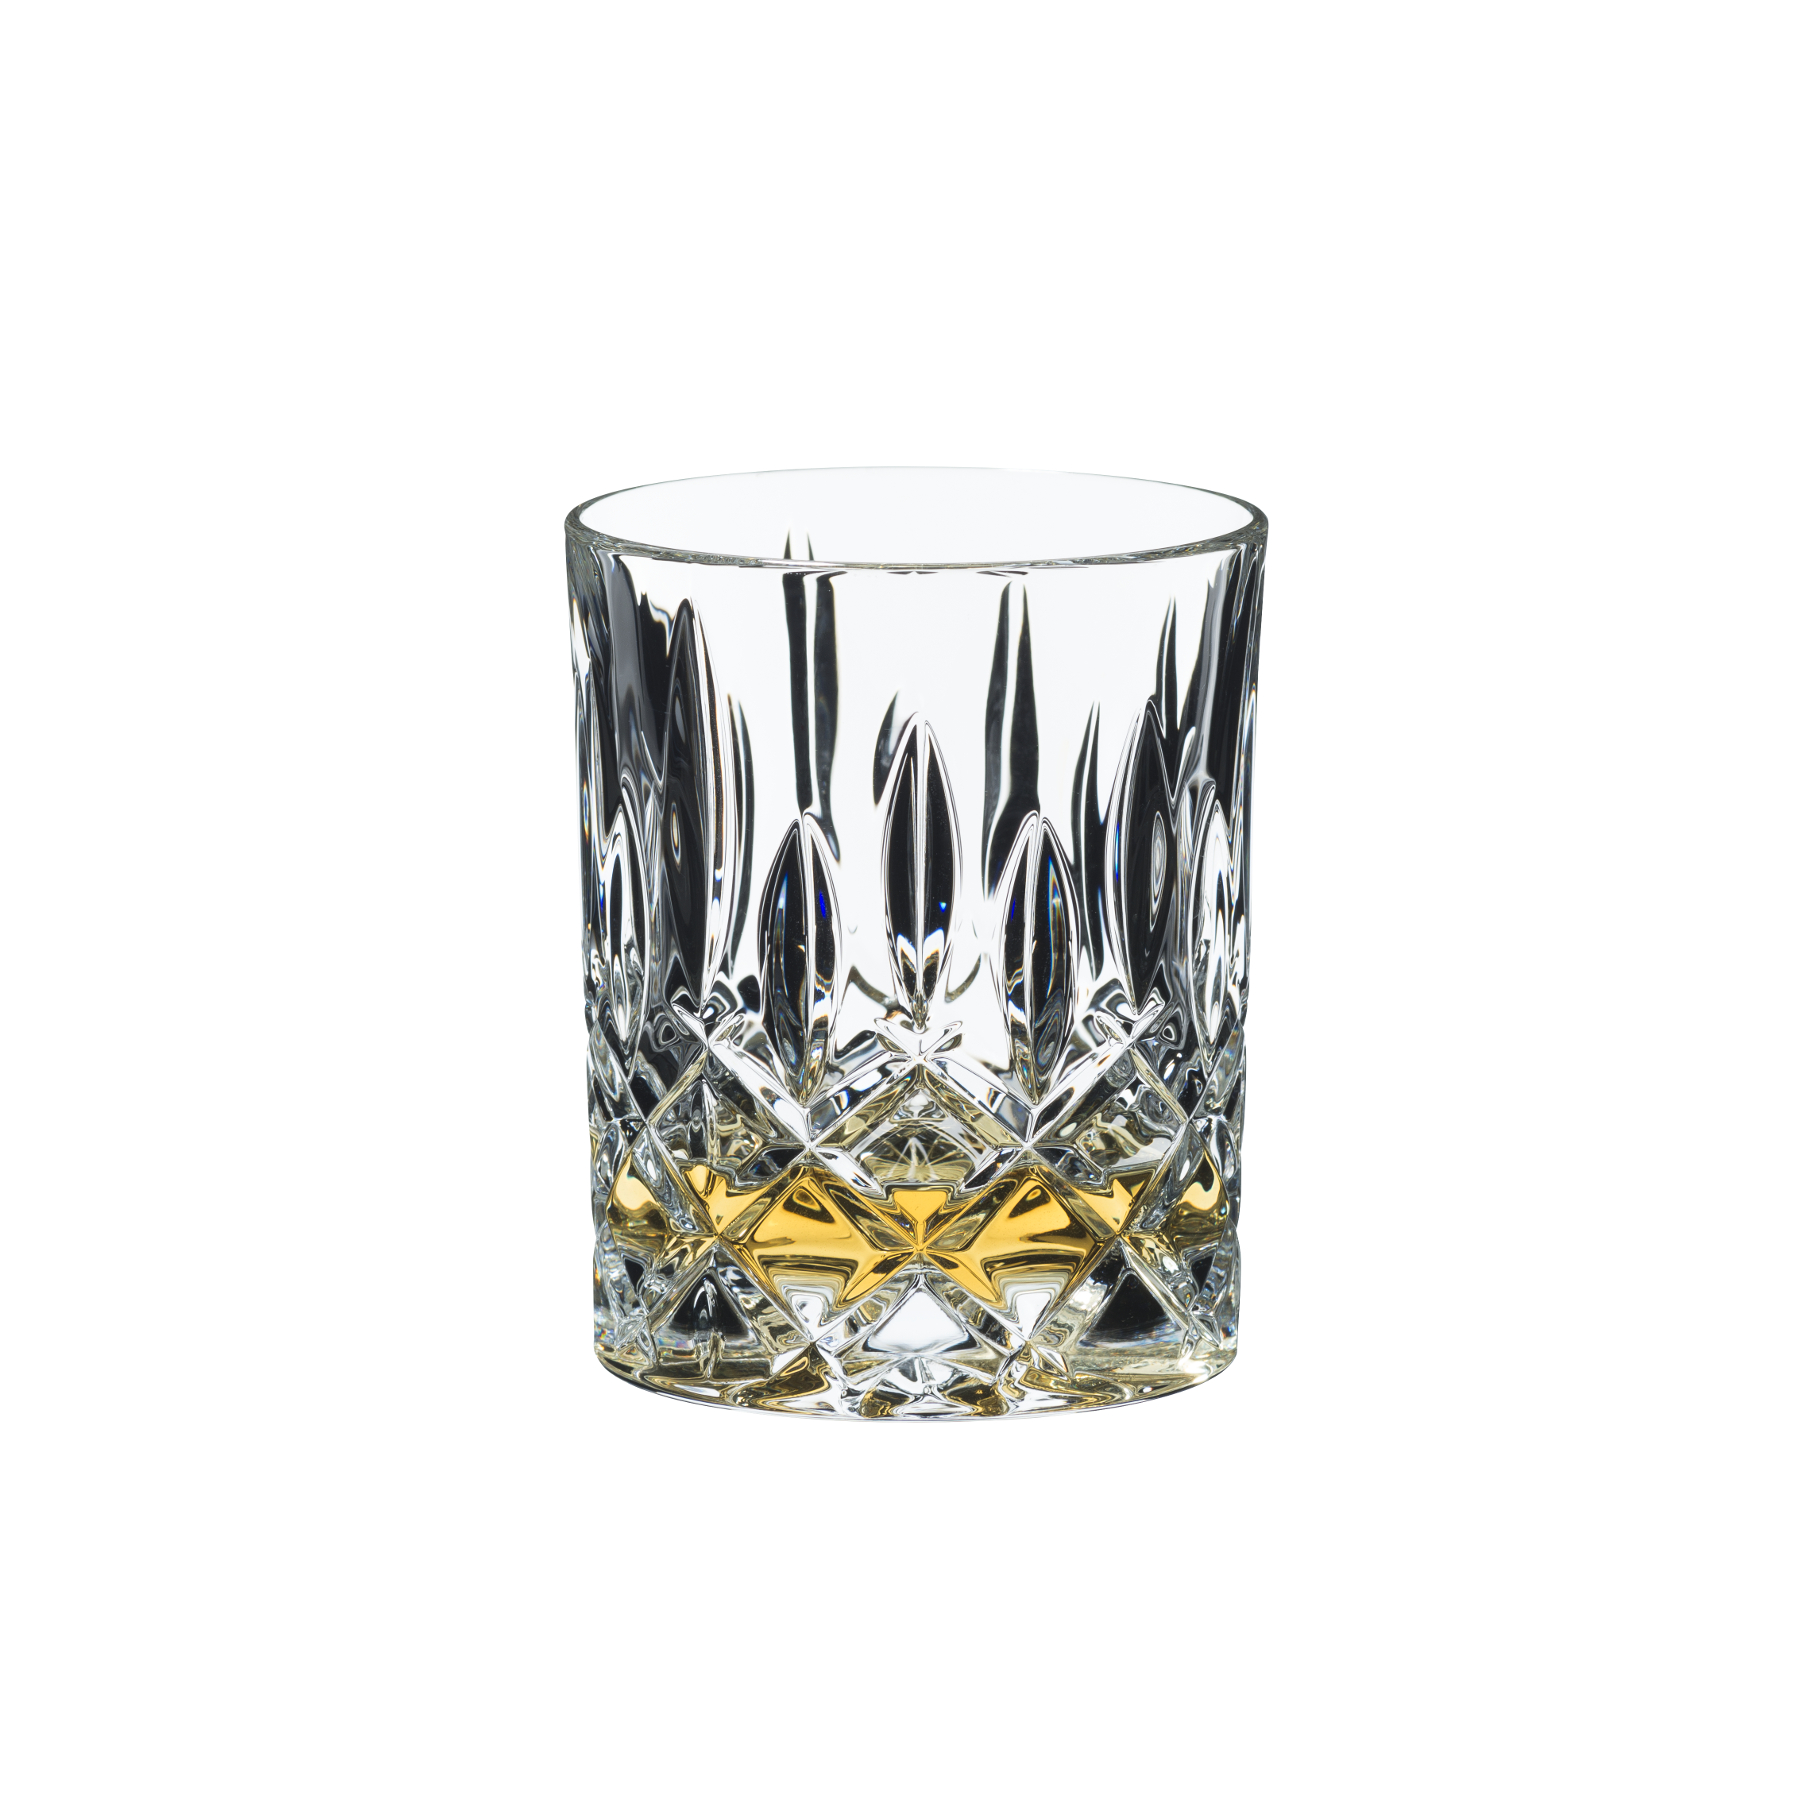 Riedel Tumbler Collection Crystal 10 Ounce Spey Whiskey Glass, Set of 2